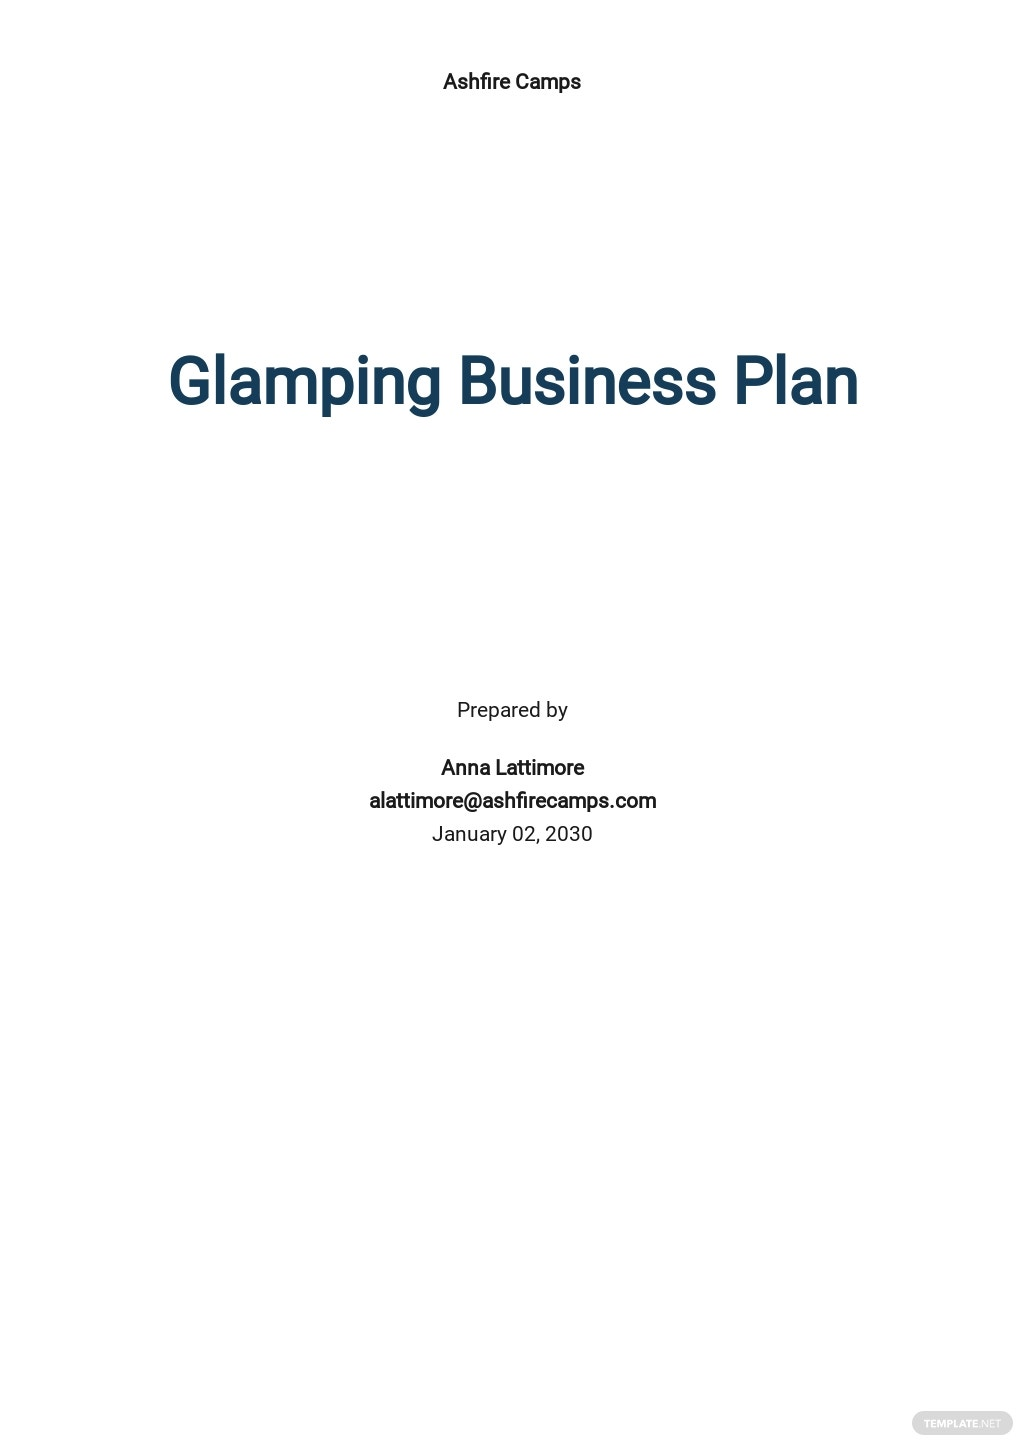 Glamping Business Plan Template [Free PDF] - Google Docs, Word, Apple Pages